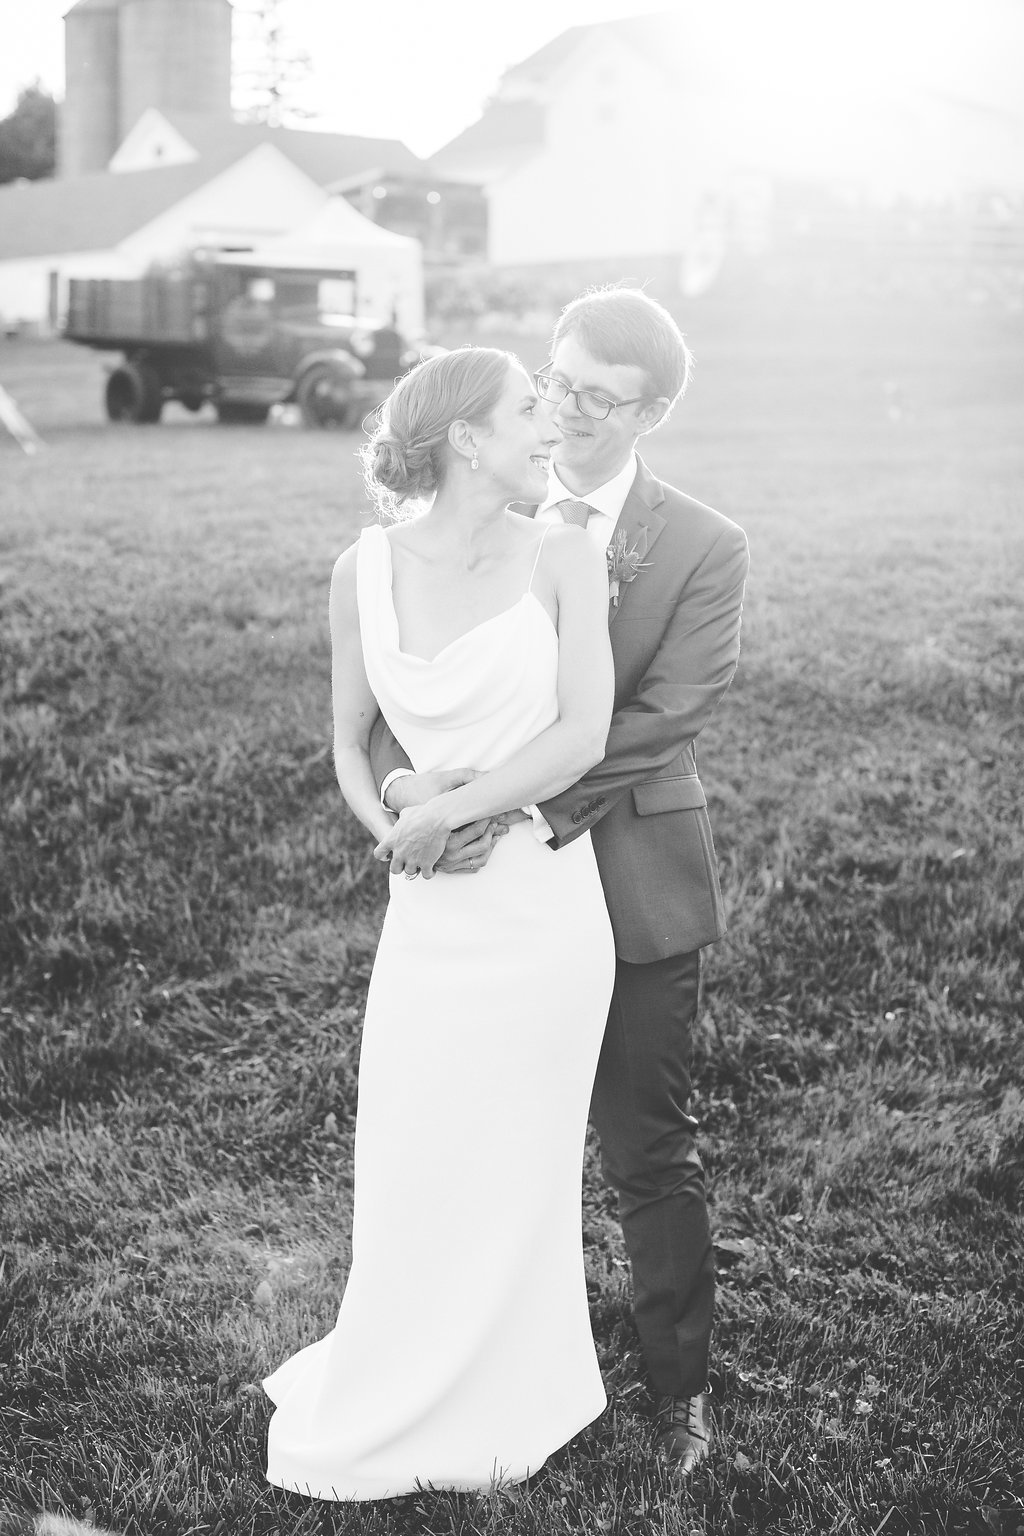 Monica-Relyea-Events-Kelsey-Combe-Photography-Dana-and-Mark-South-Farms-wedding-morris-connecticut-barn-tent-jewish-farm-country-litchfield-county706